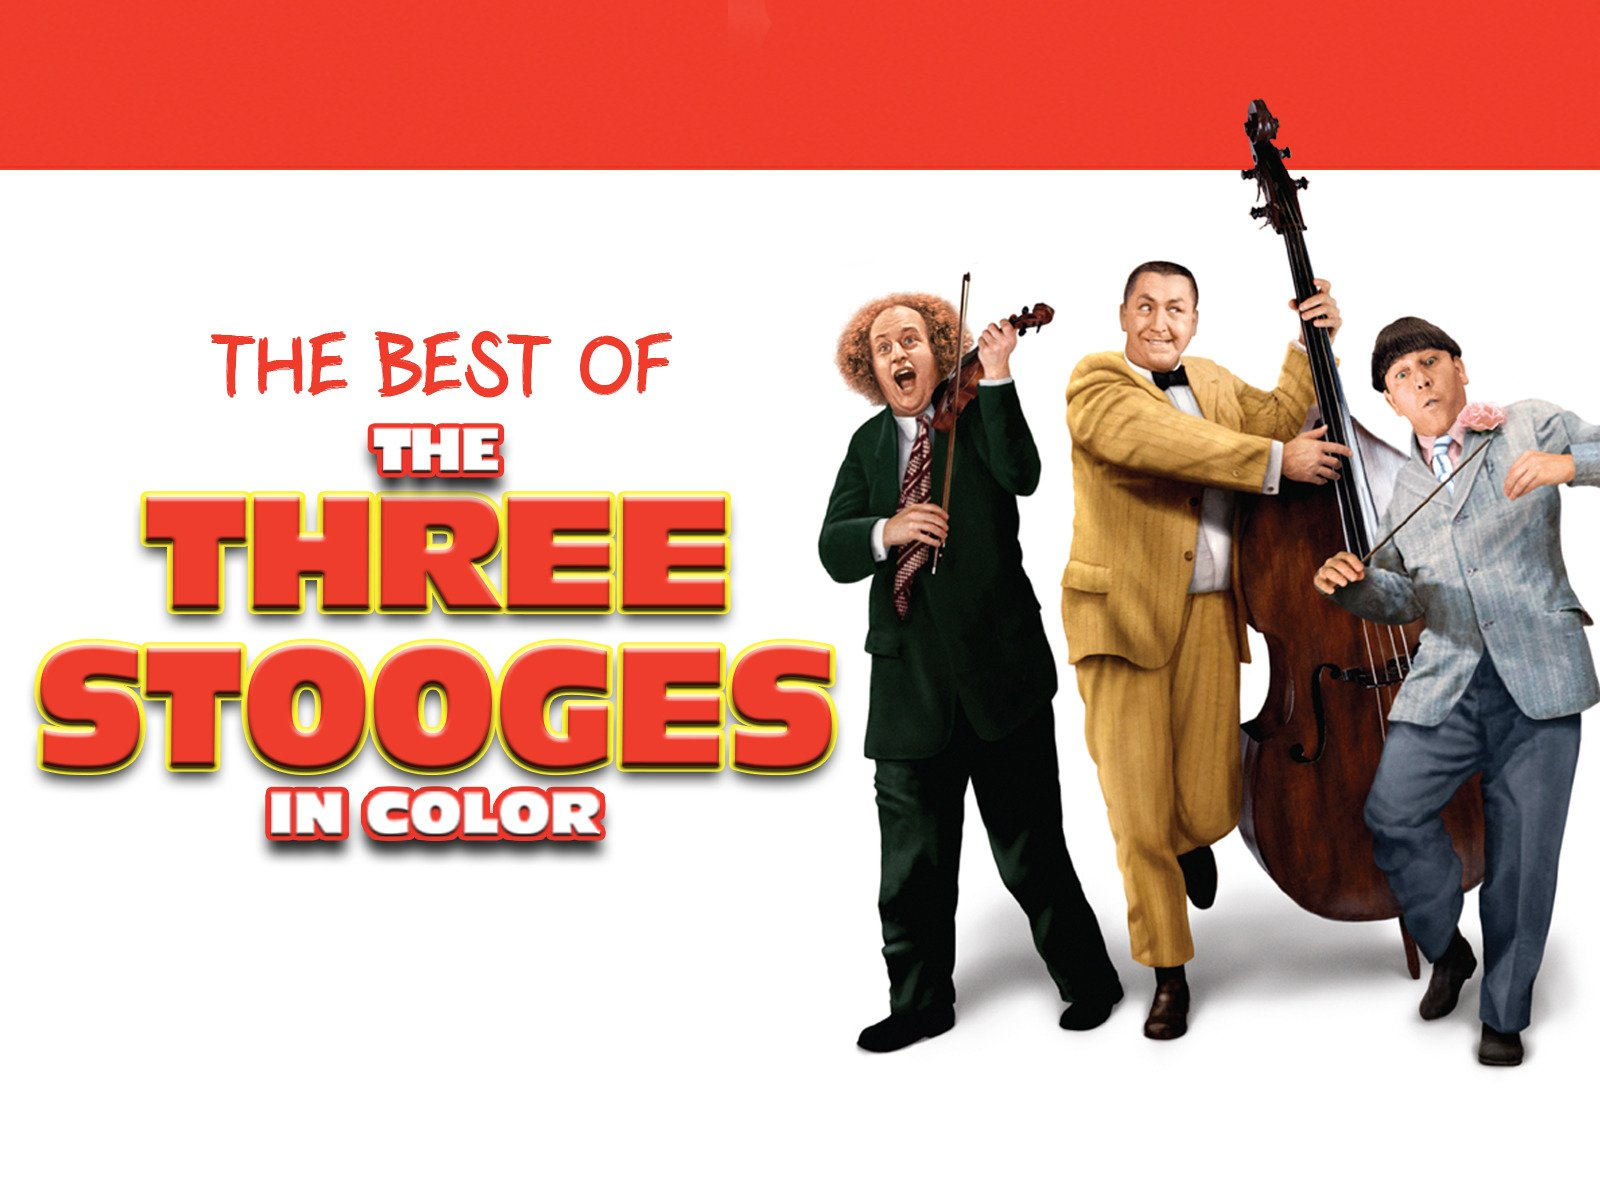 The Best of The Three Stooges in Color! - Season 1